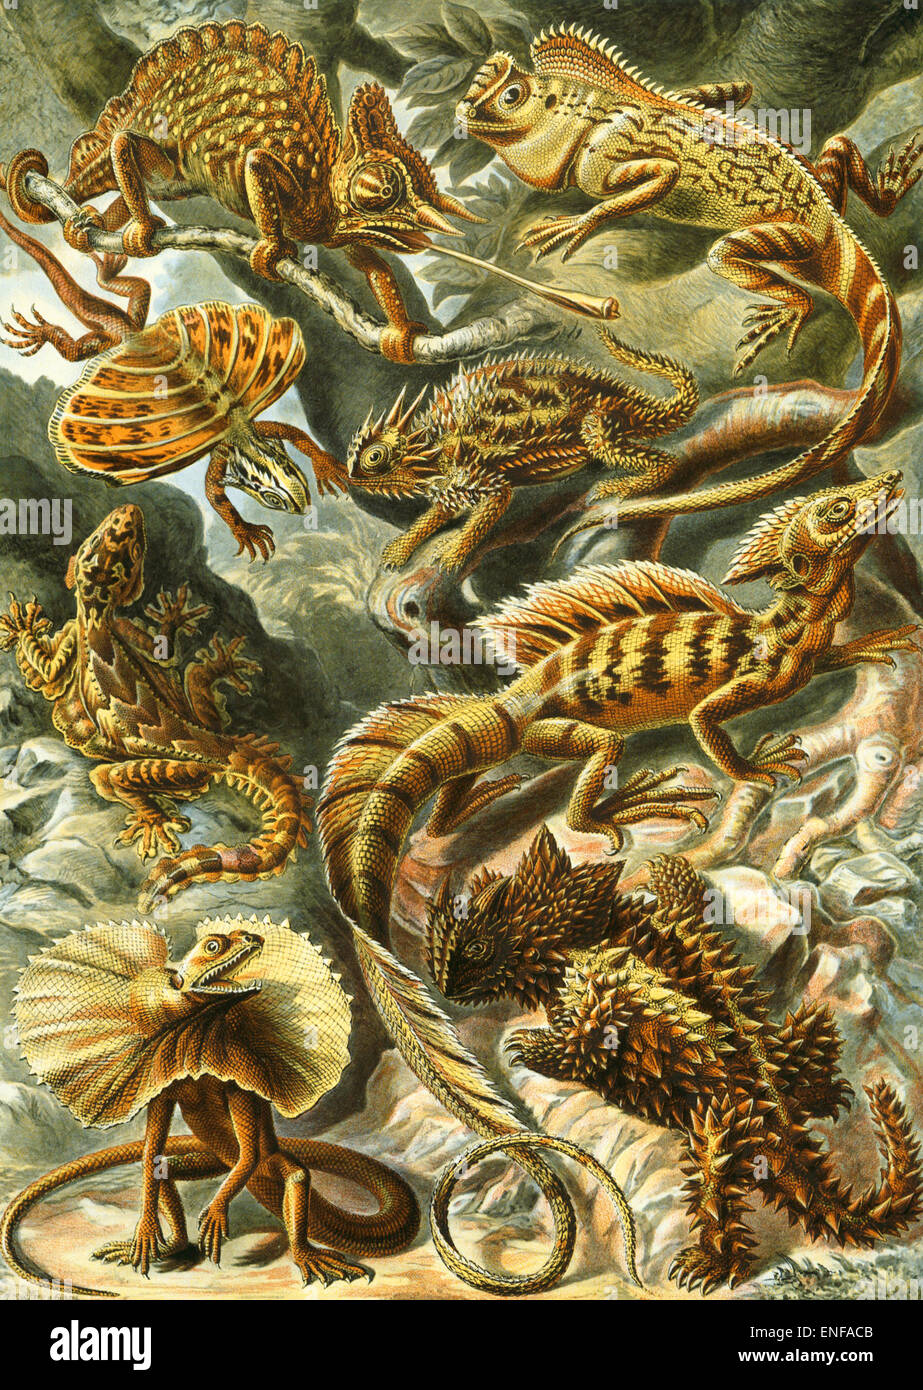 Lacertilia (Lizards), by Ernst Haeckel, 1904 - Editorial use only. - Stock Image